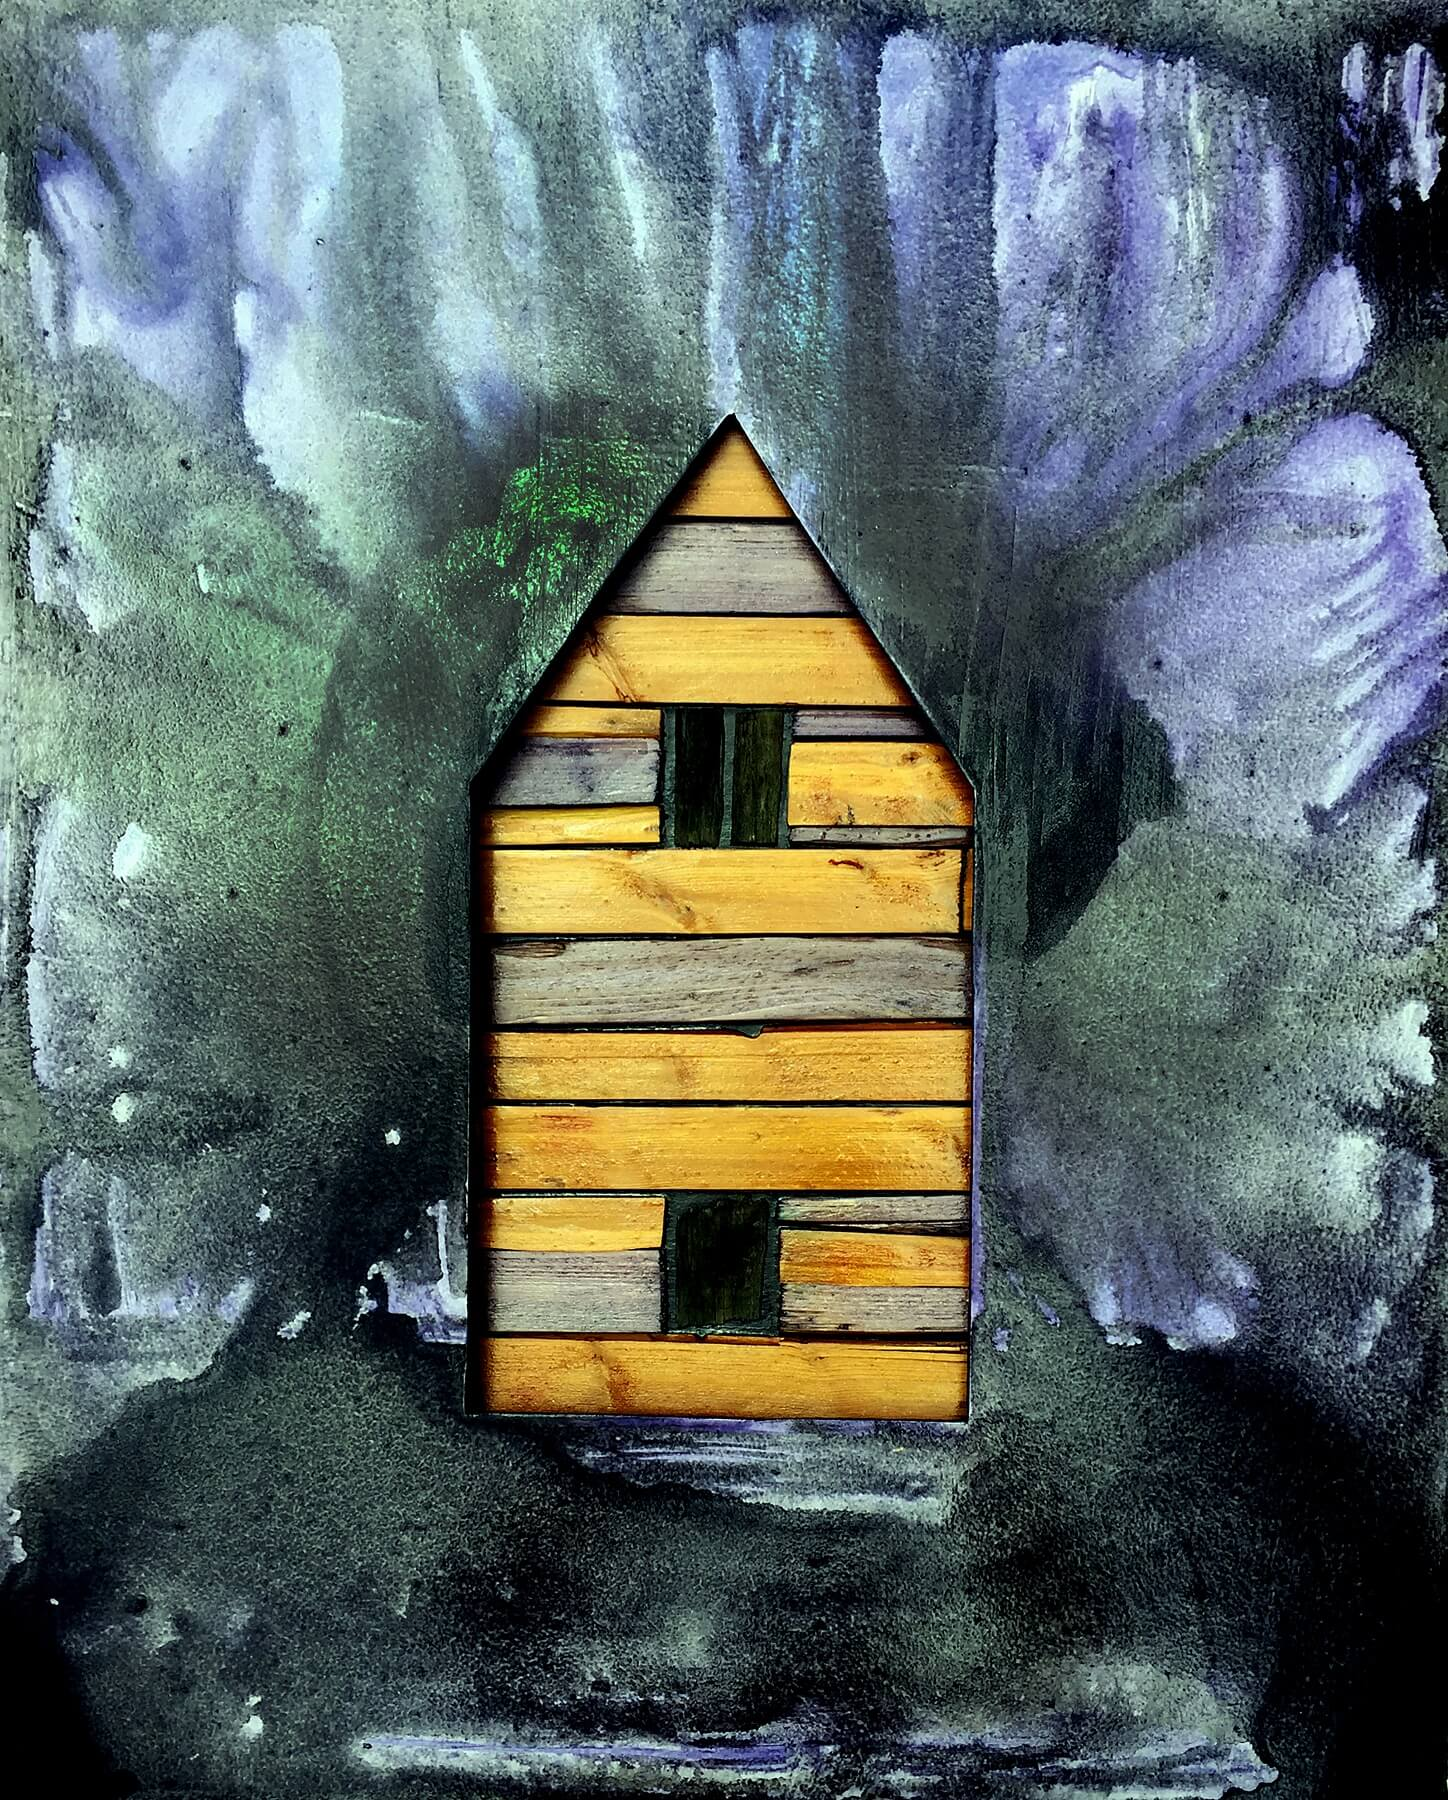 Jun 9 – Jul 30: Home > House: Works by Kevin Mitchell